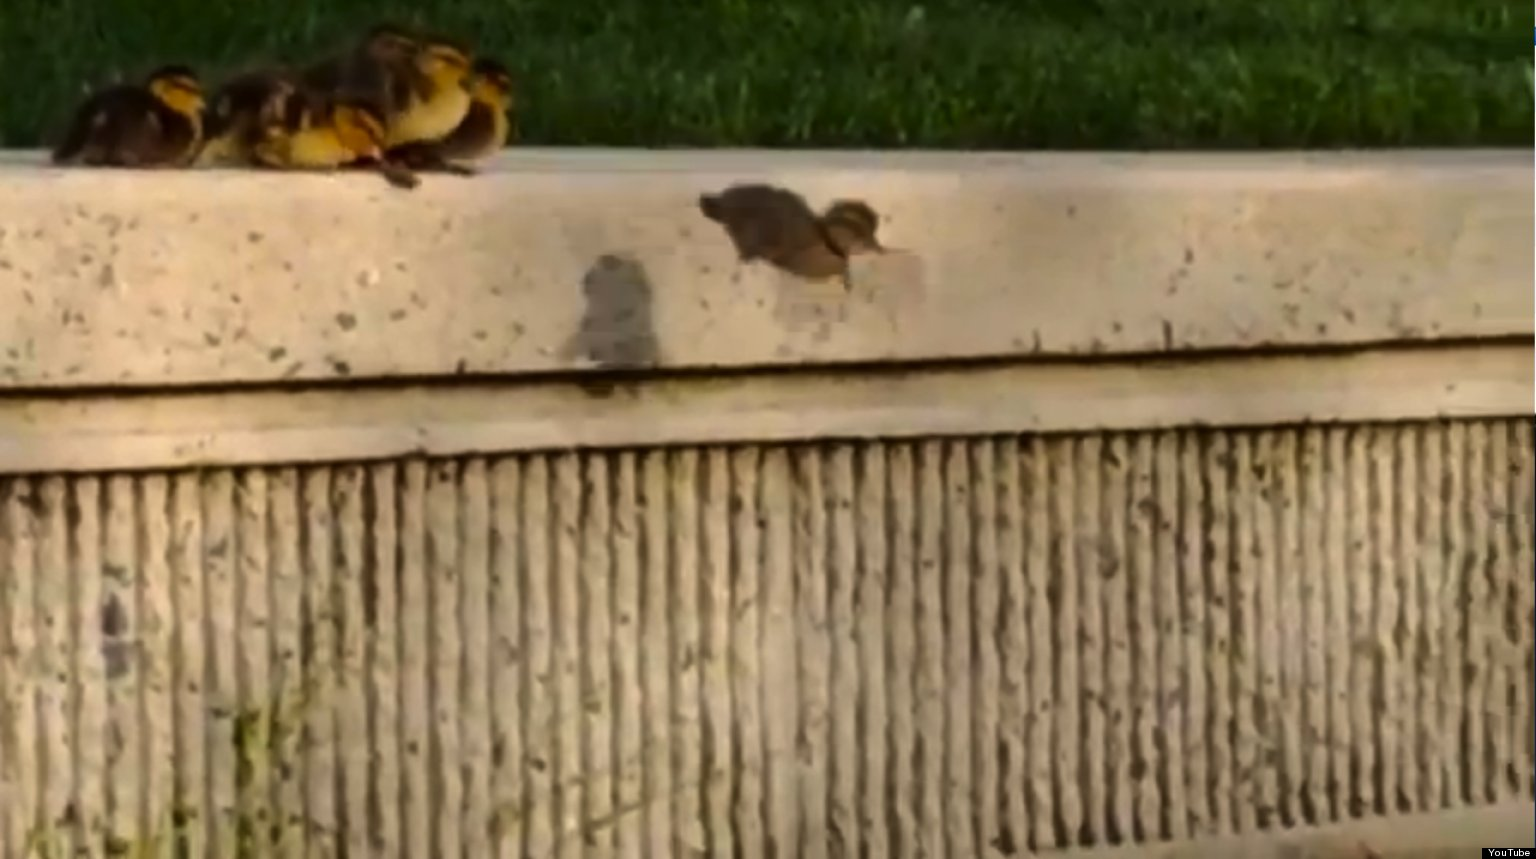 WATCH: Little Ducks vs. Big Ledge